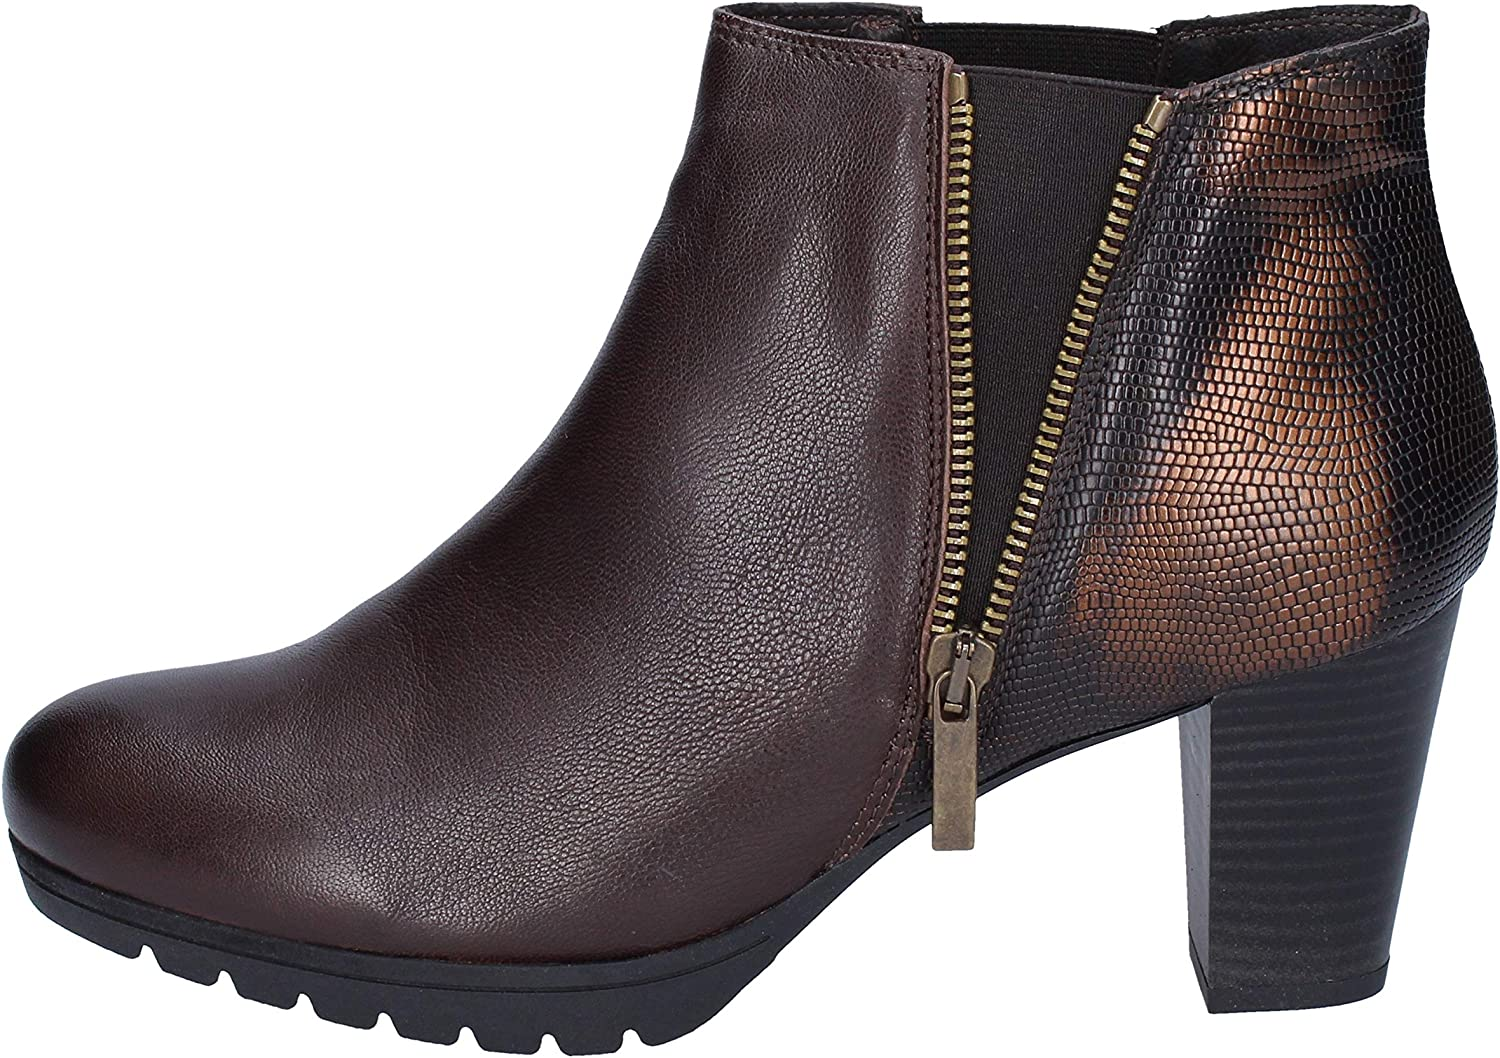 KEYS Boots Womens Leather Brown